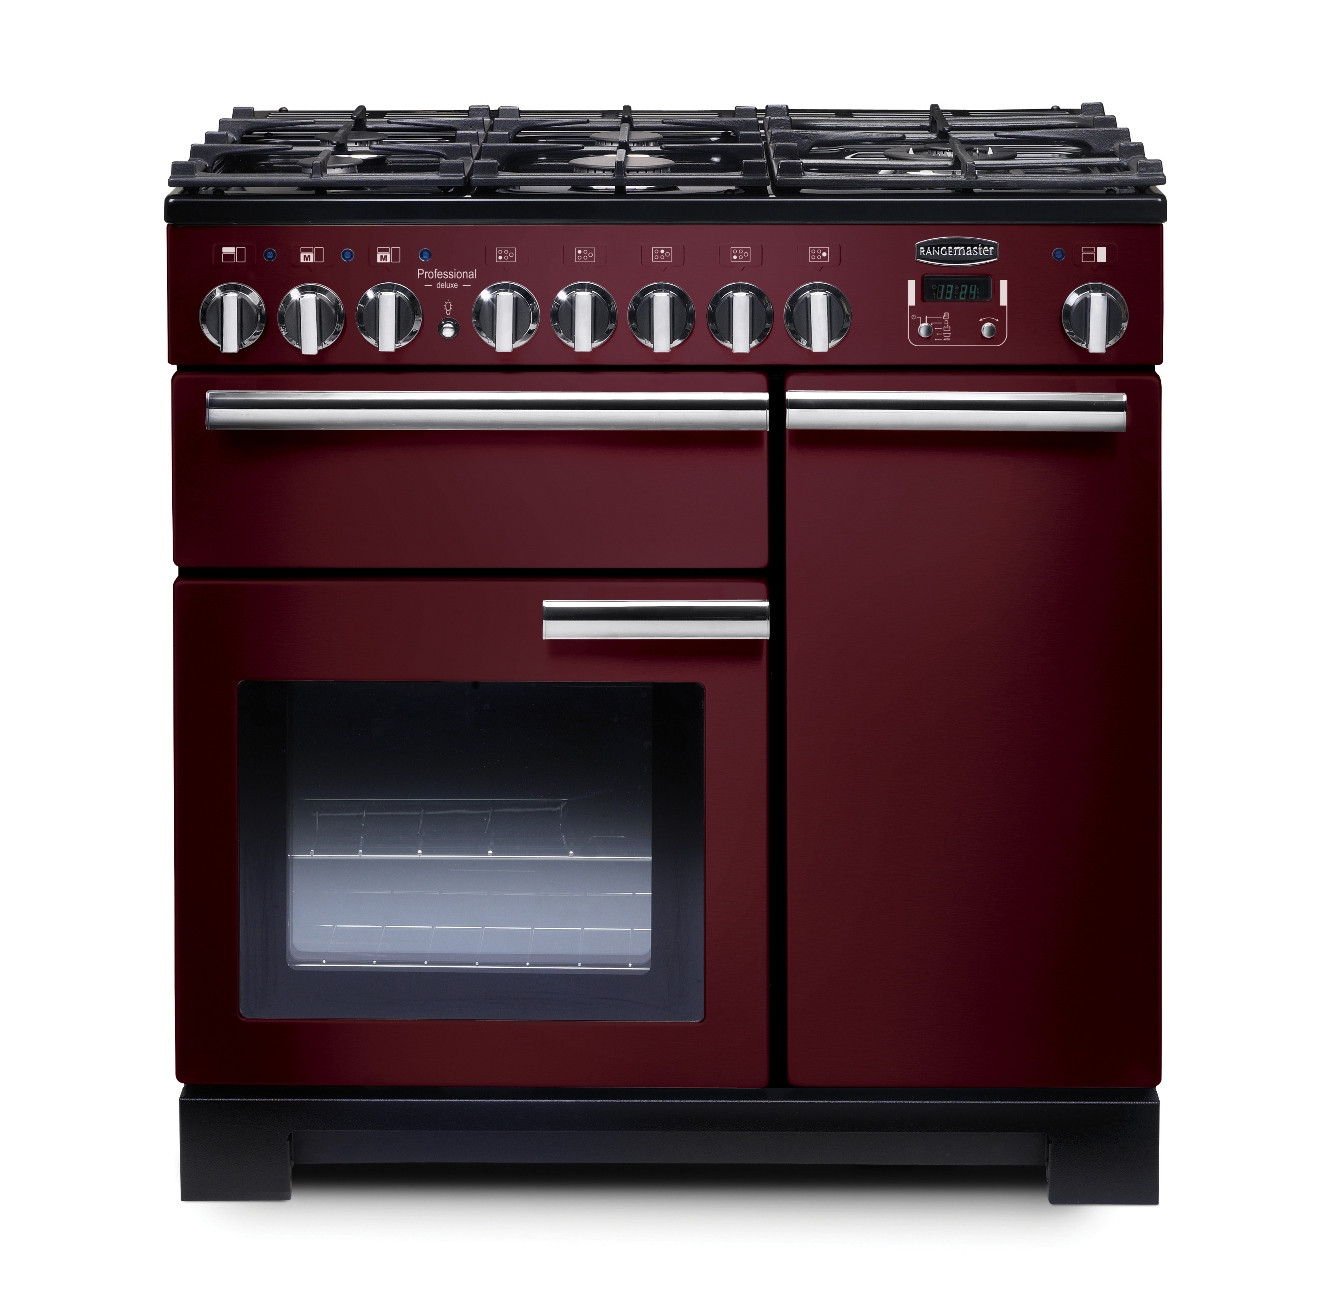 Rangemaster Professional Deluxe 90 Dual Fuel Cranberry Range Cooker PDL90DFFCY/C 97620